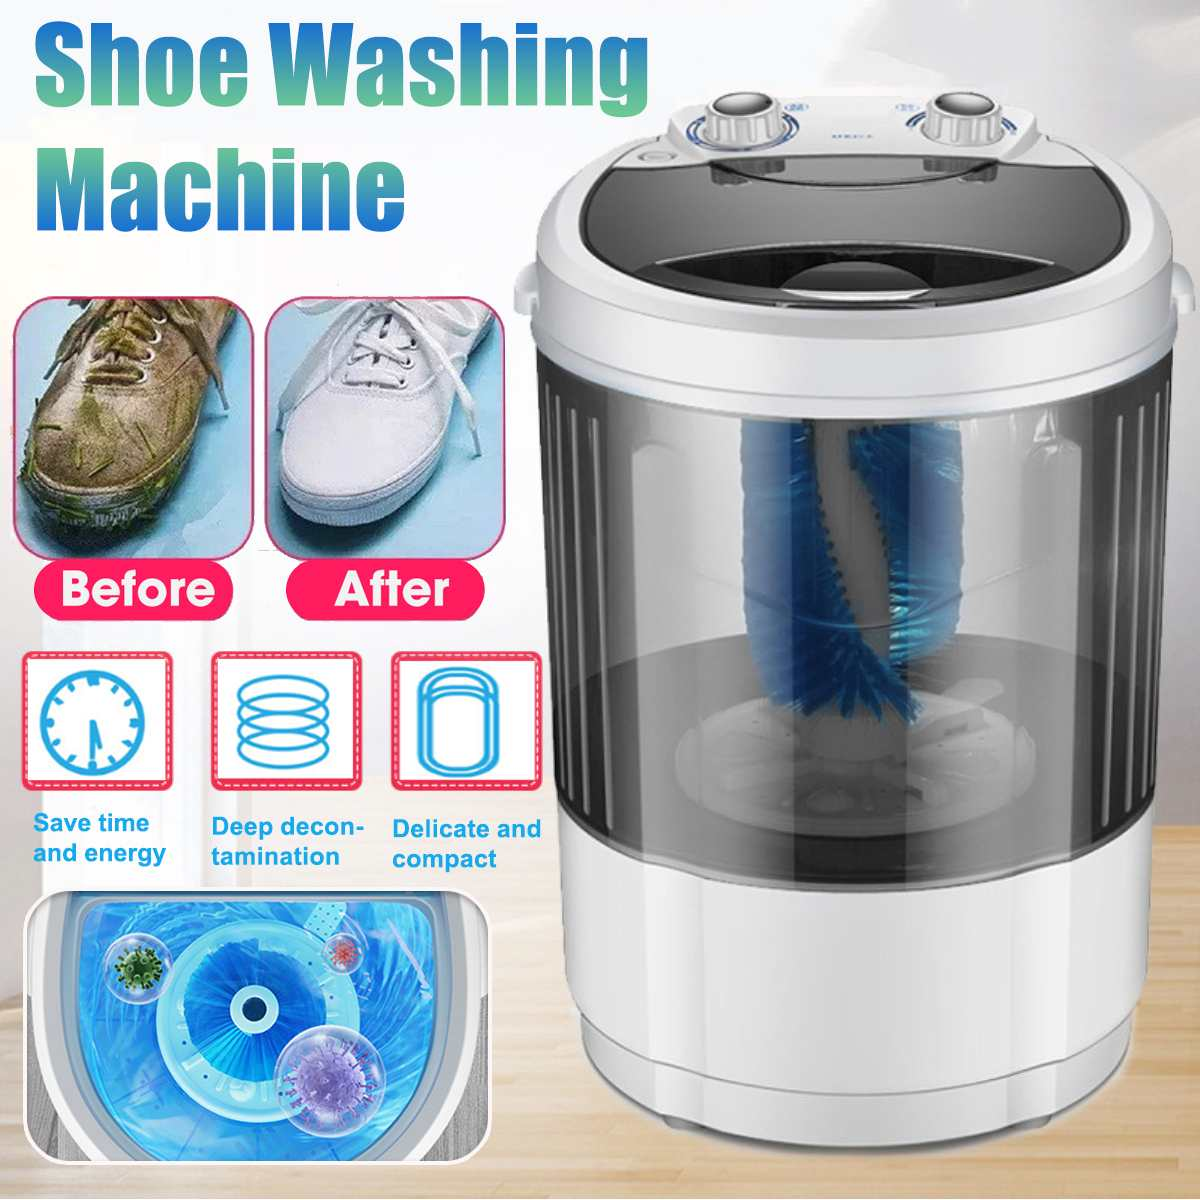 Shoes Washing Machine 4.5kg Portable Household Single Tube Washer And Dryer Machine For Shoes UV Bacteriostasis Shoes Cleaner